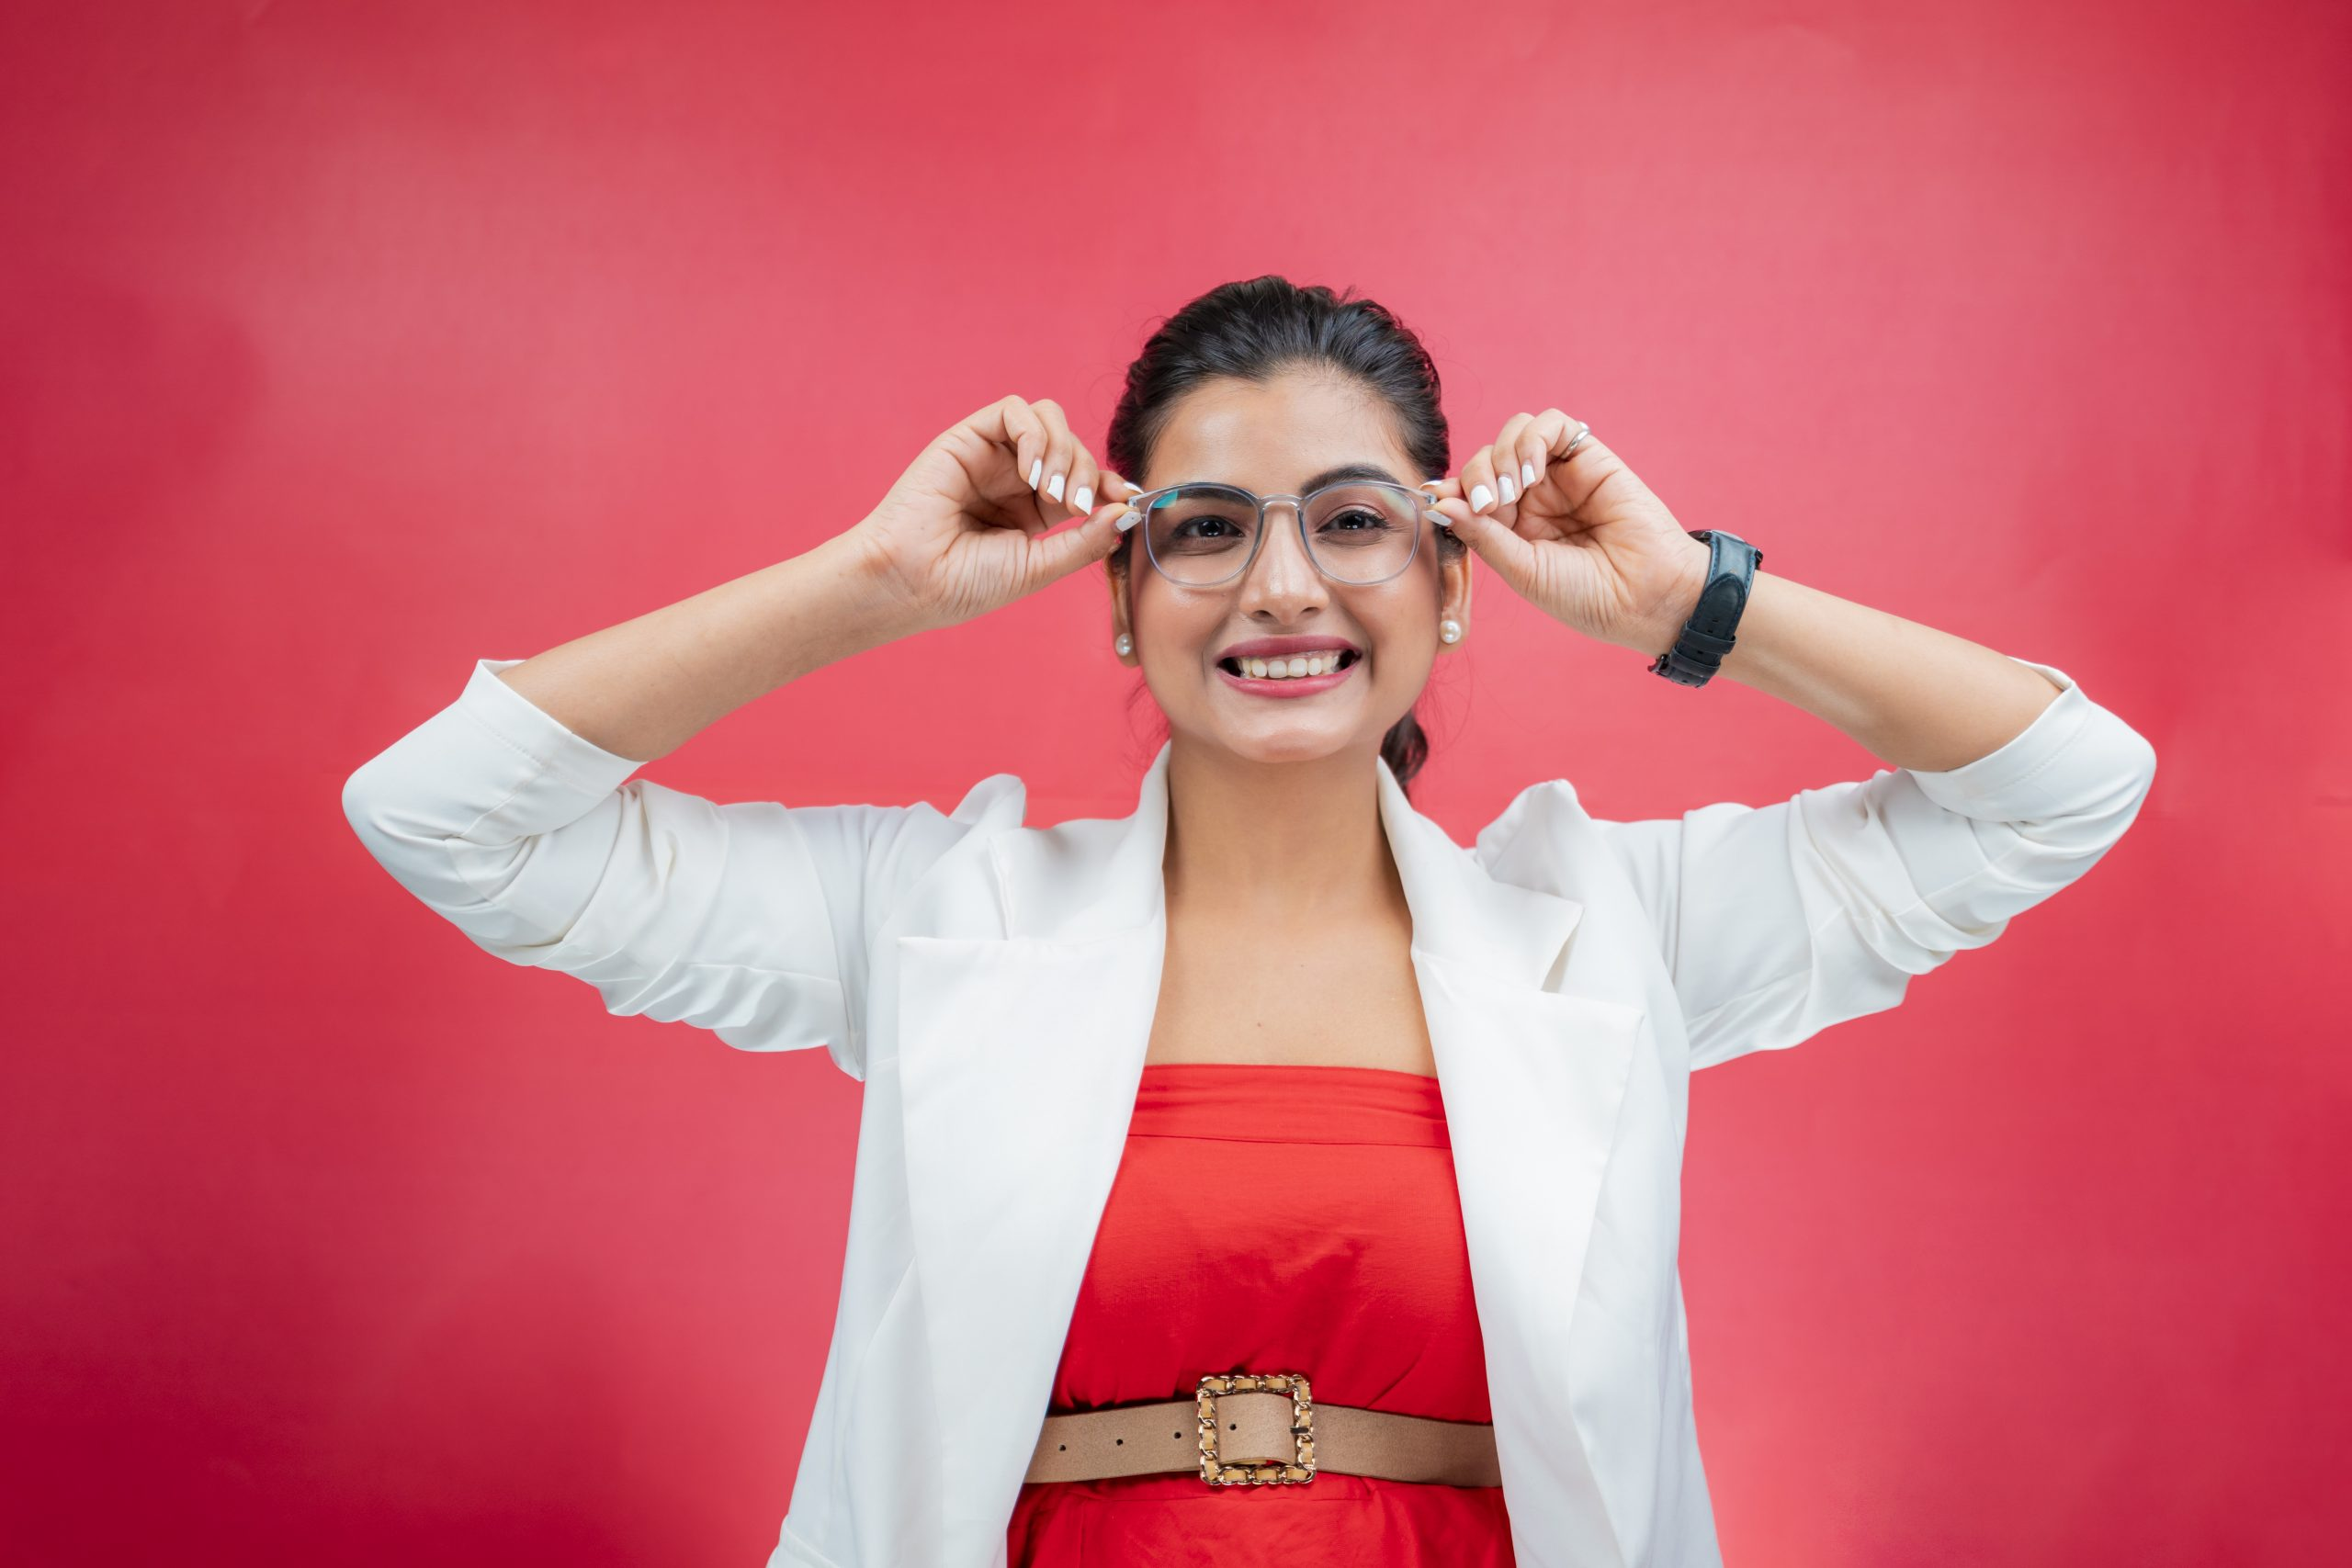 Happy woman smiling with glasses